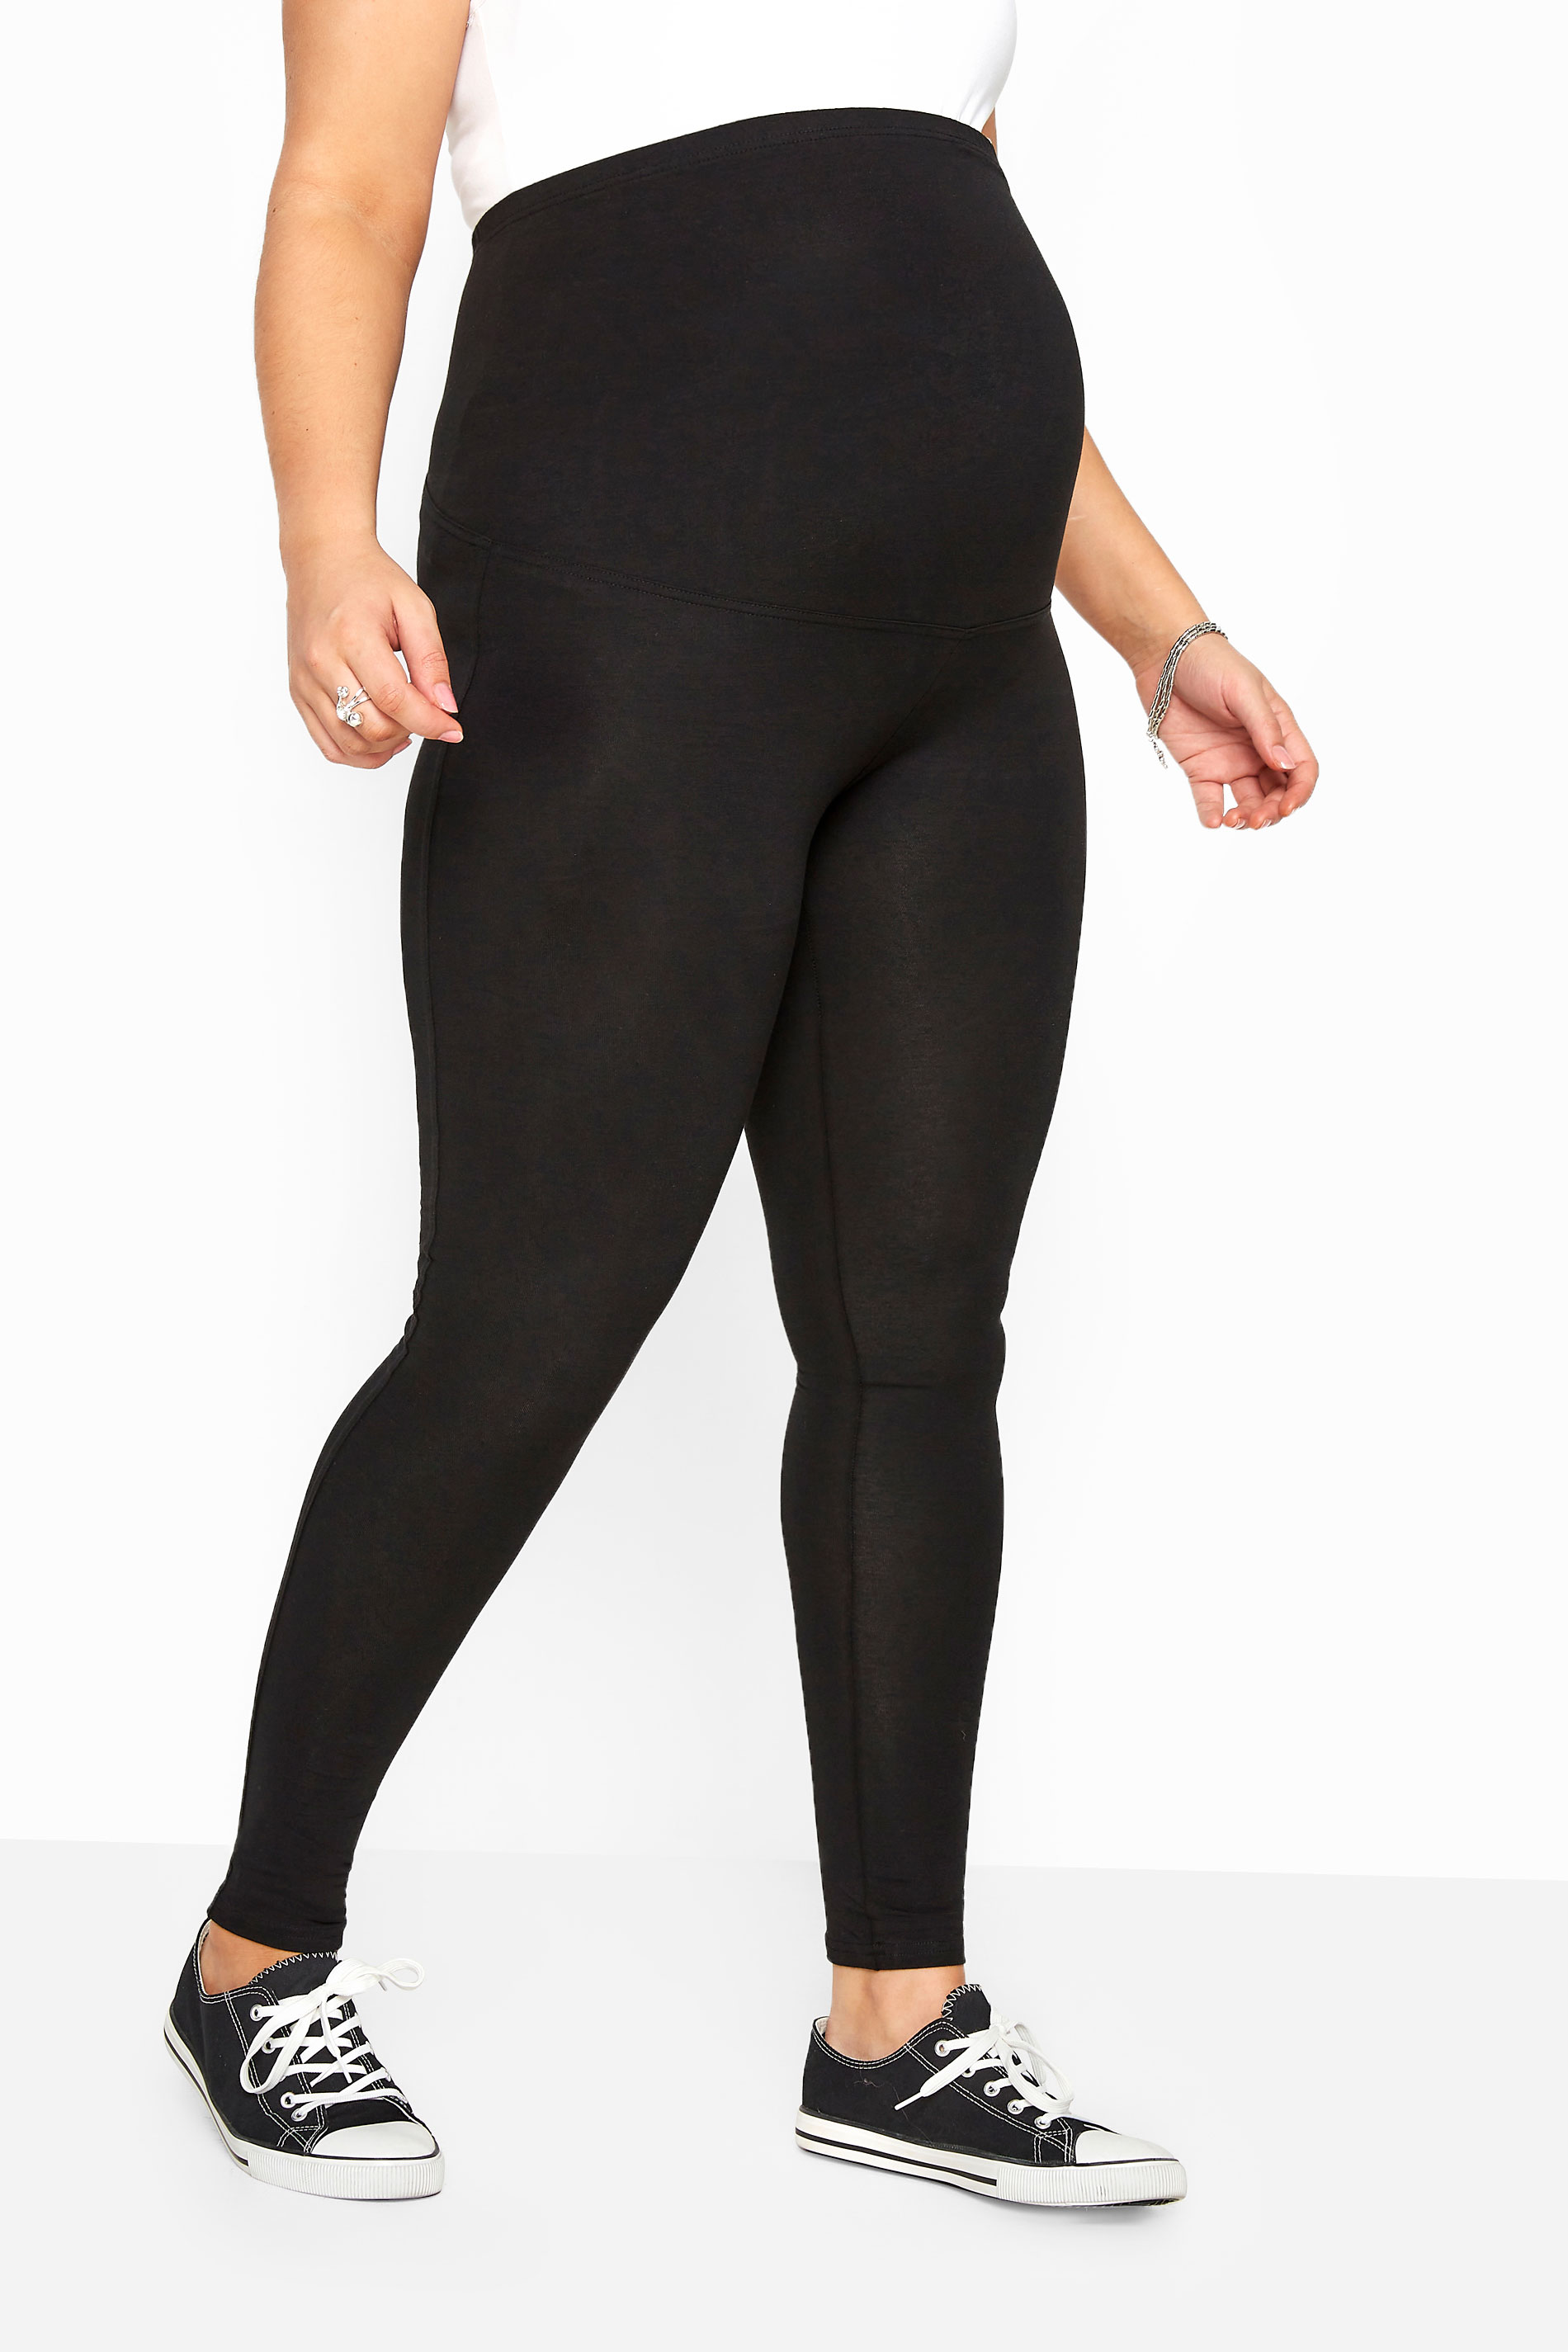 BUMP IT UP MATERNITY Black Cotton Essential Leggings With Comfort Panel